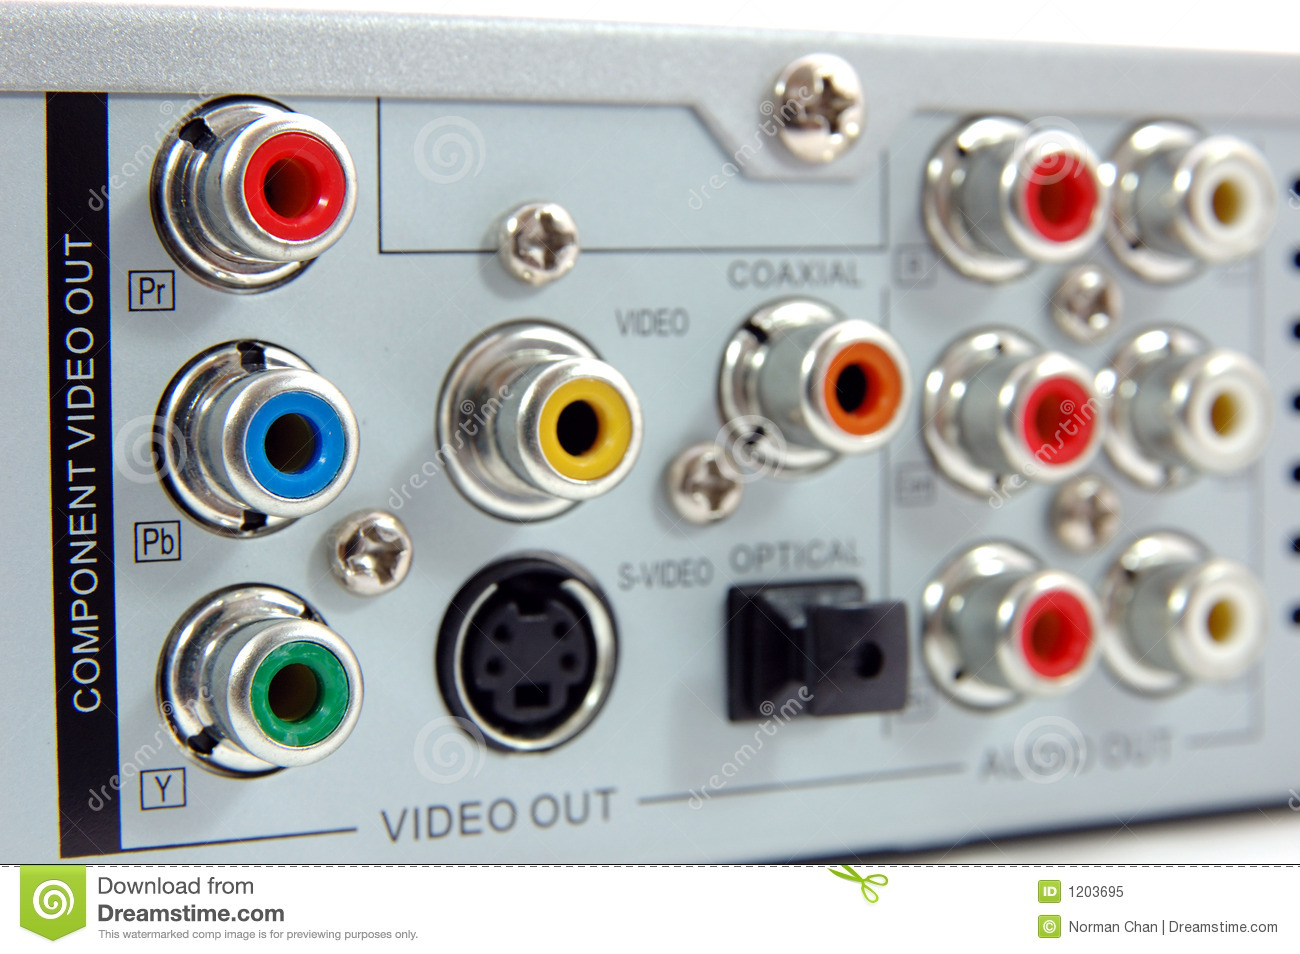 Dvd player back panel stock image. Image of connector - 1203695